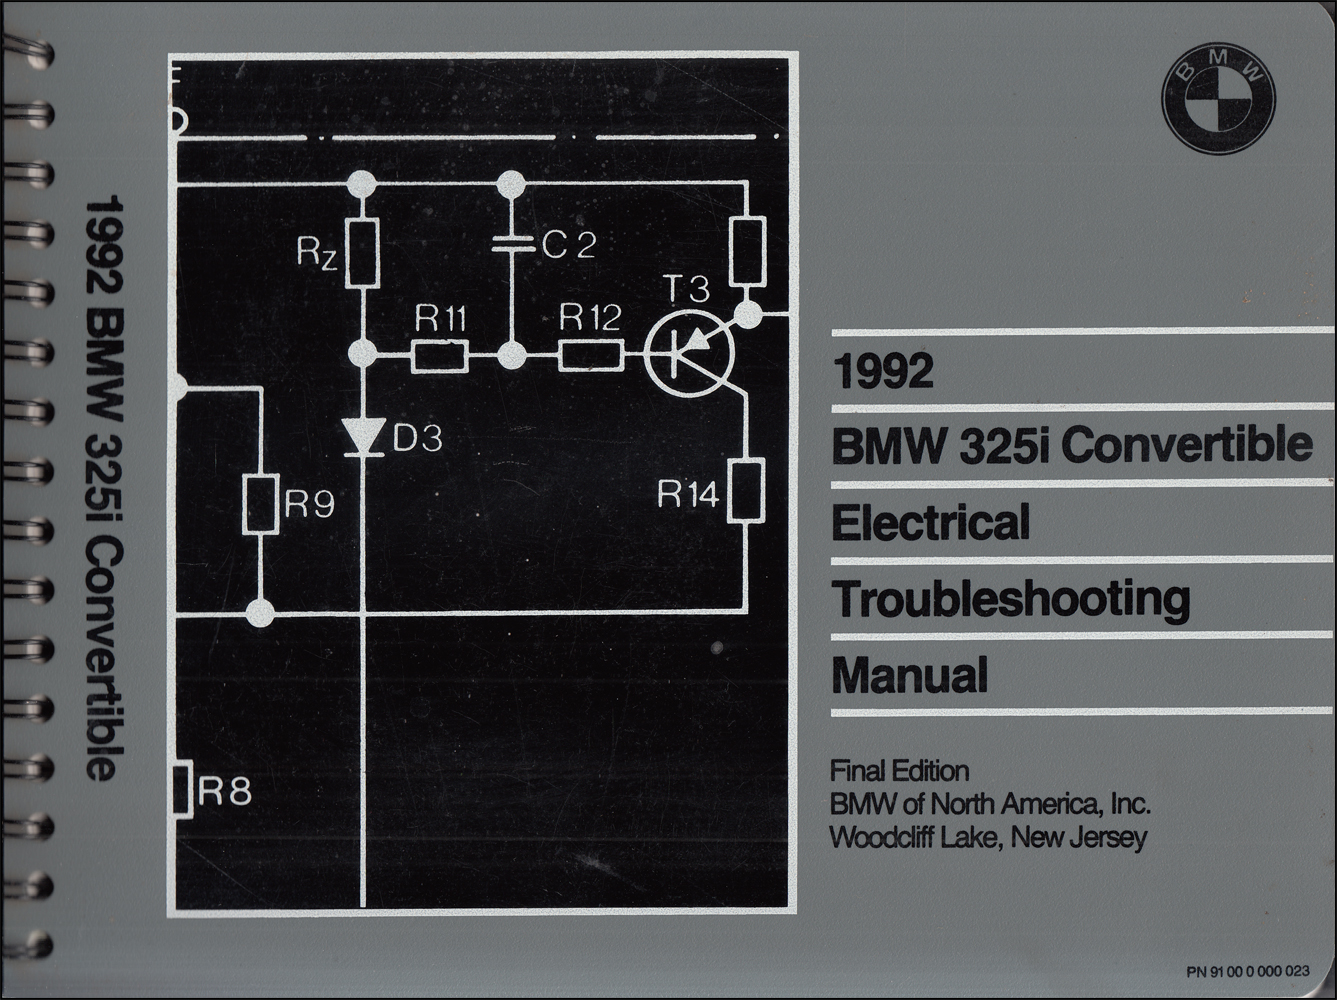 1992 BMW 325i Convertible Electrical Troubleshooting Manual